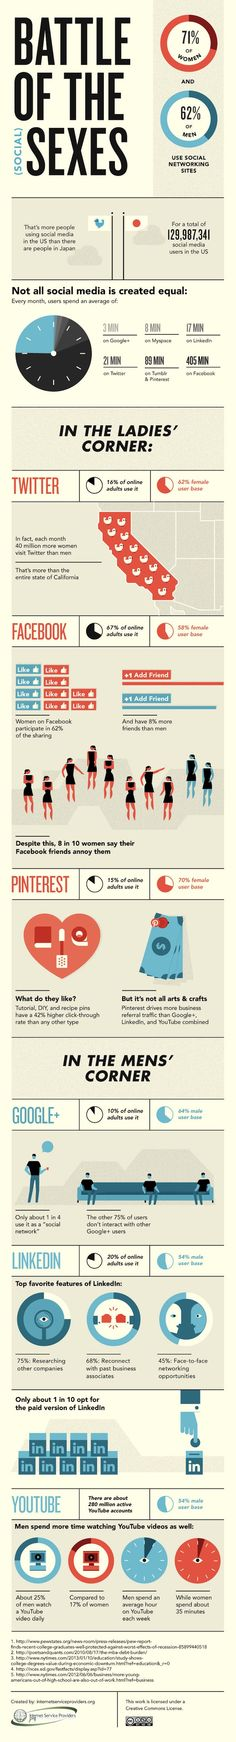 How Differently Men and Women Behave on Social Media via DesignTAXI